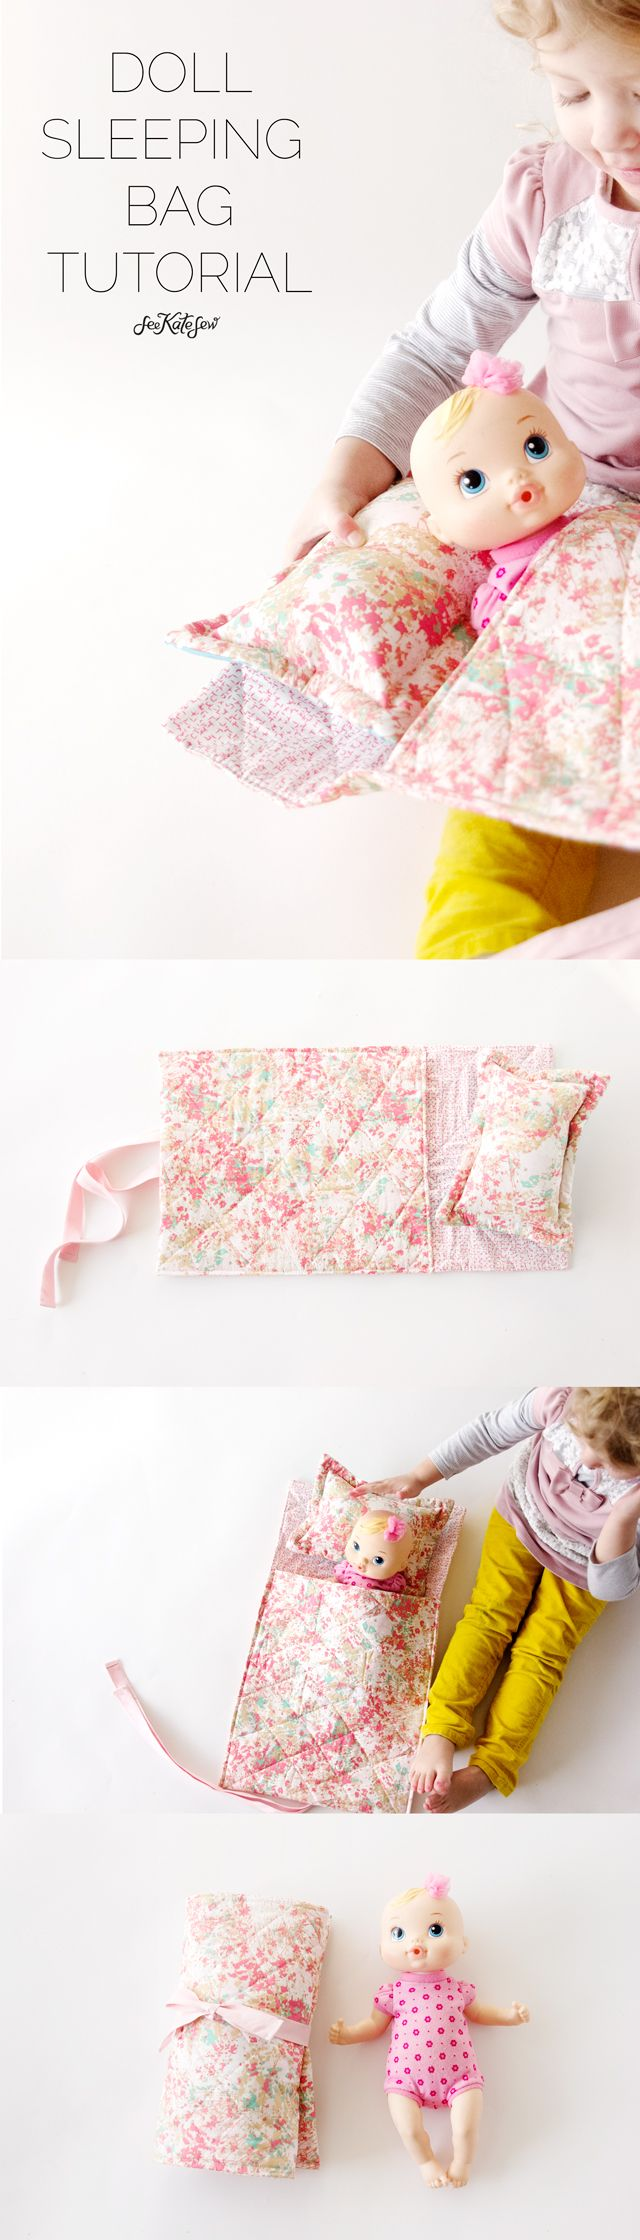 easy doll sleeping bag tutorial